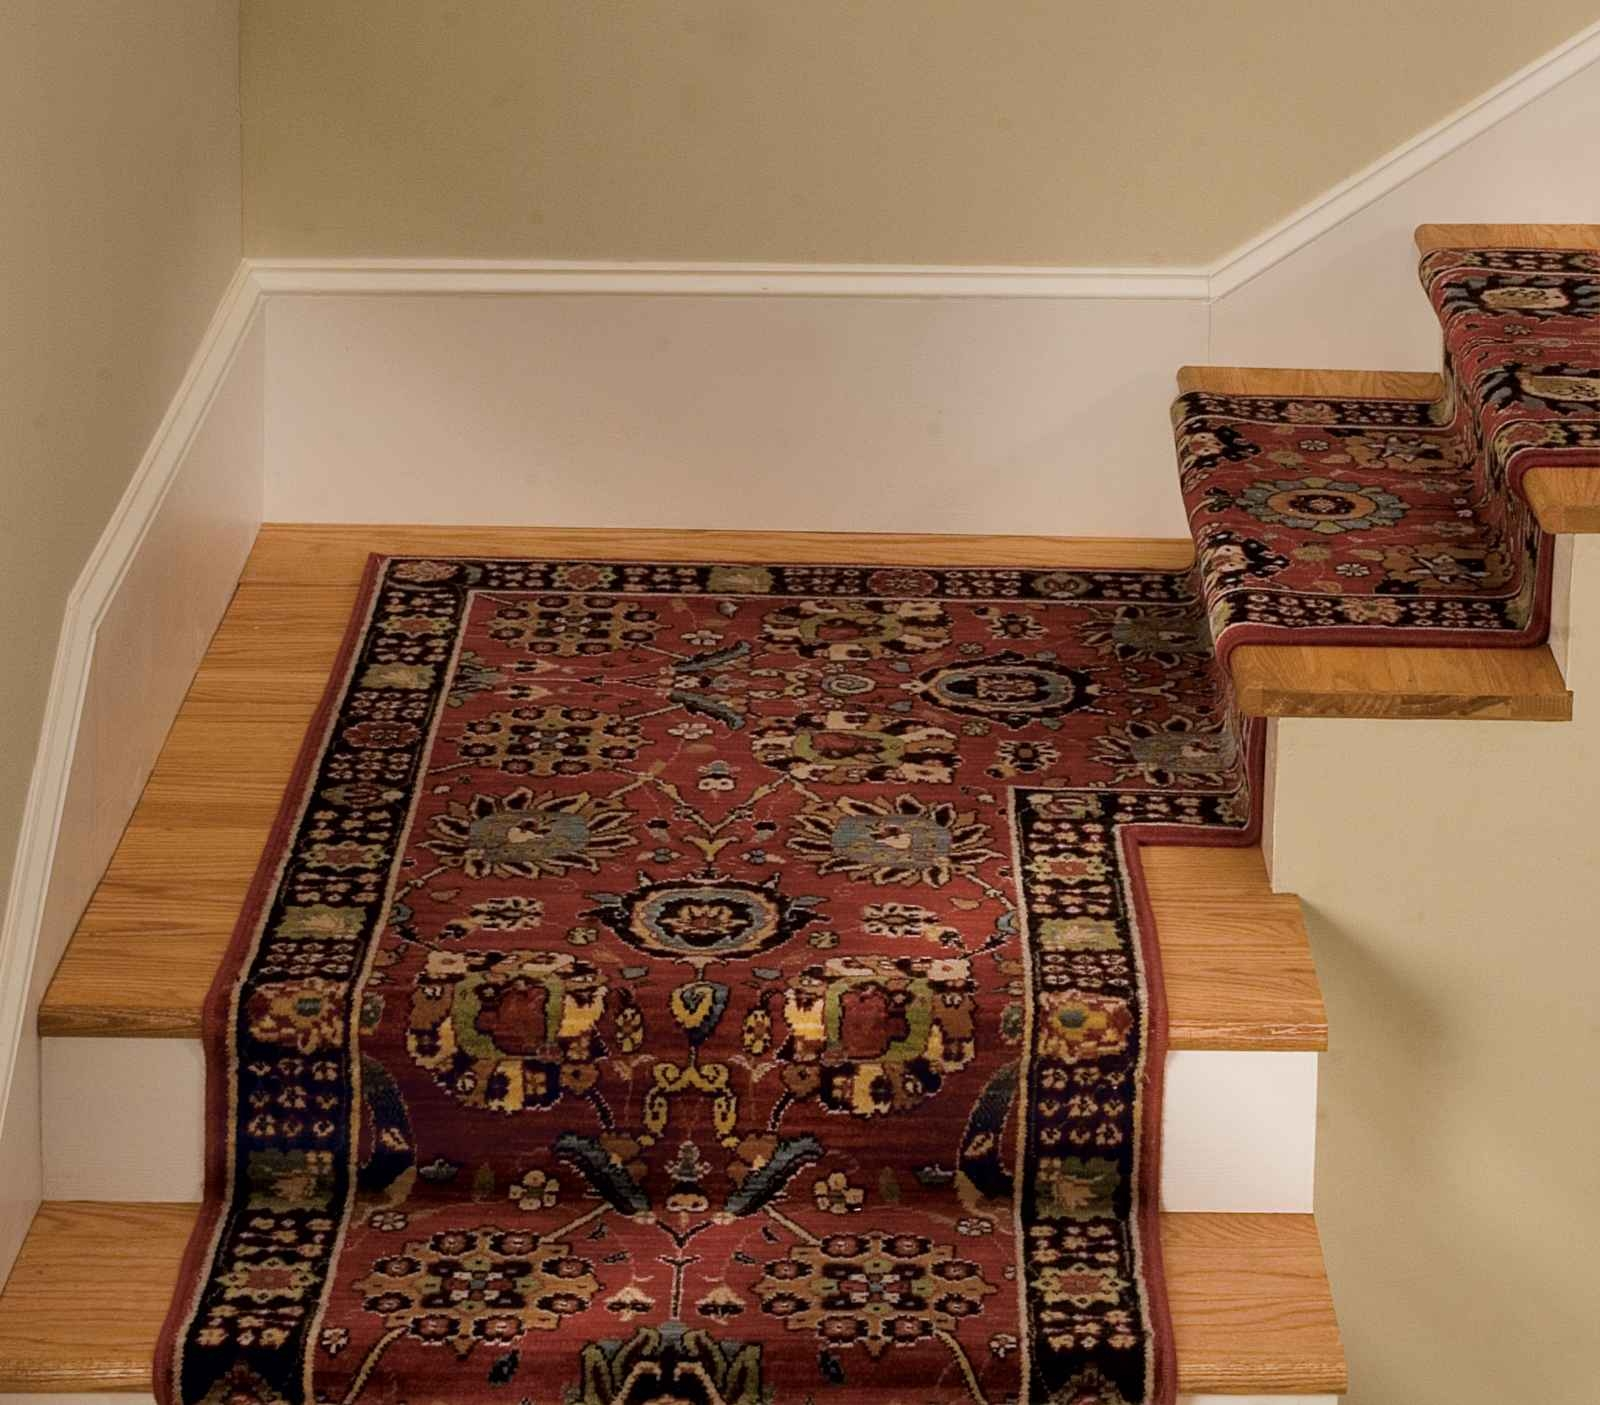 Carpet Stair Runner For Home New Home Pinterest Stair Treads Intended For Stair Treads Landing Rug (Image 3 of 15)